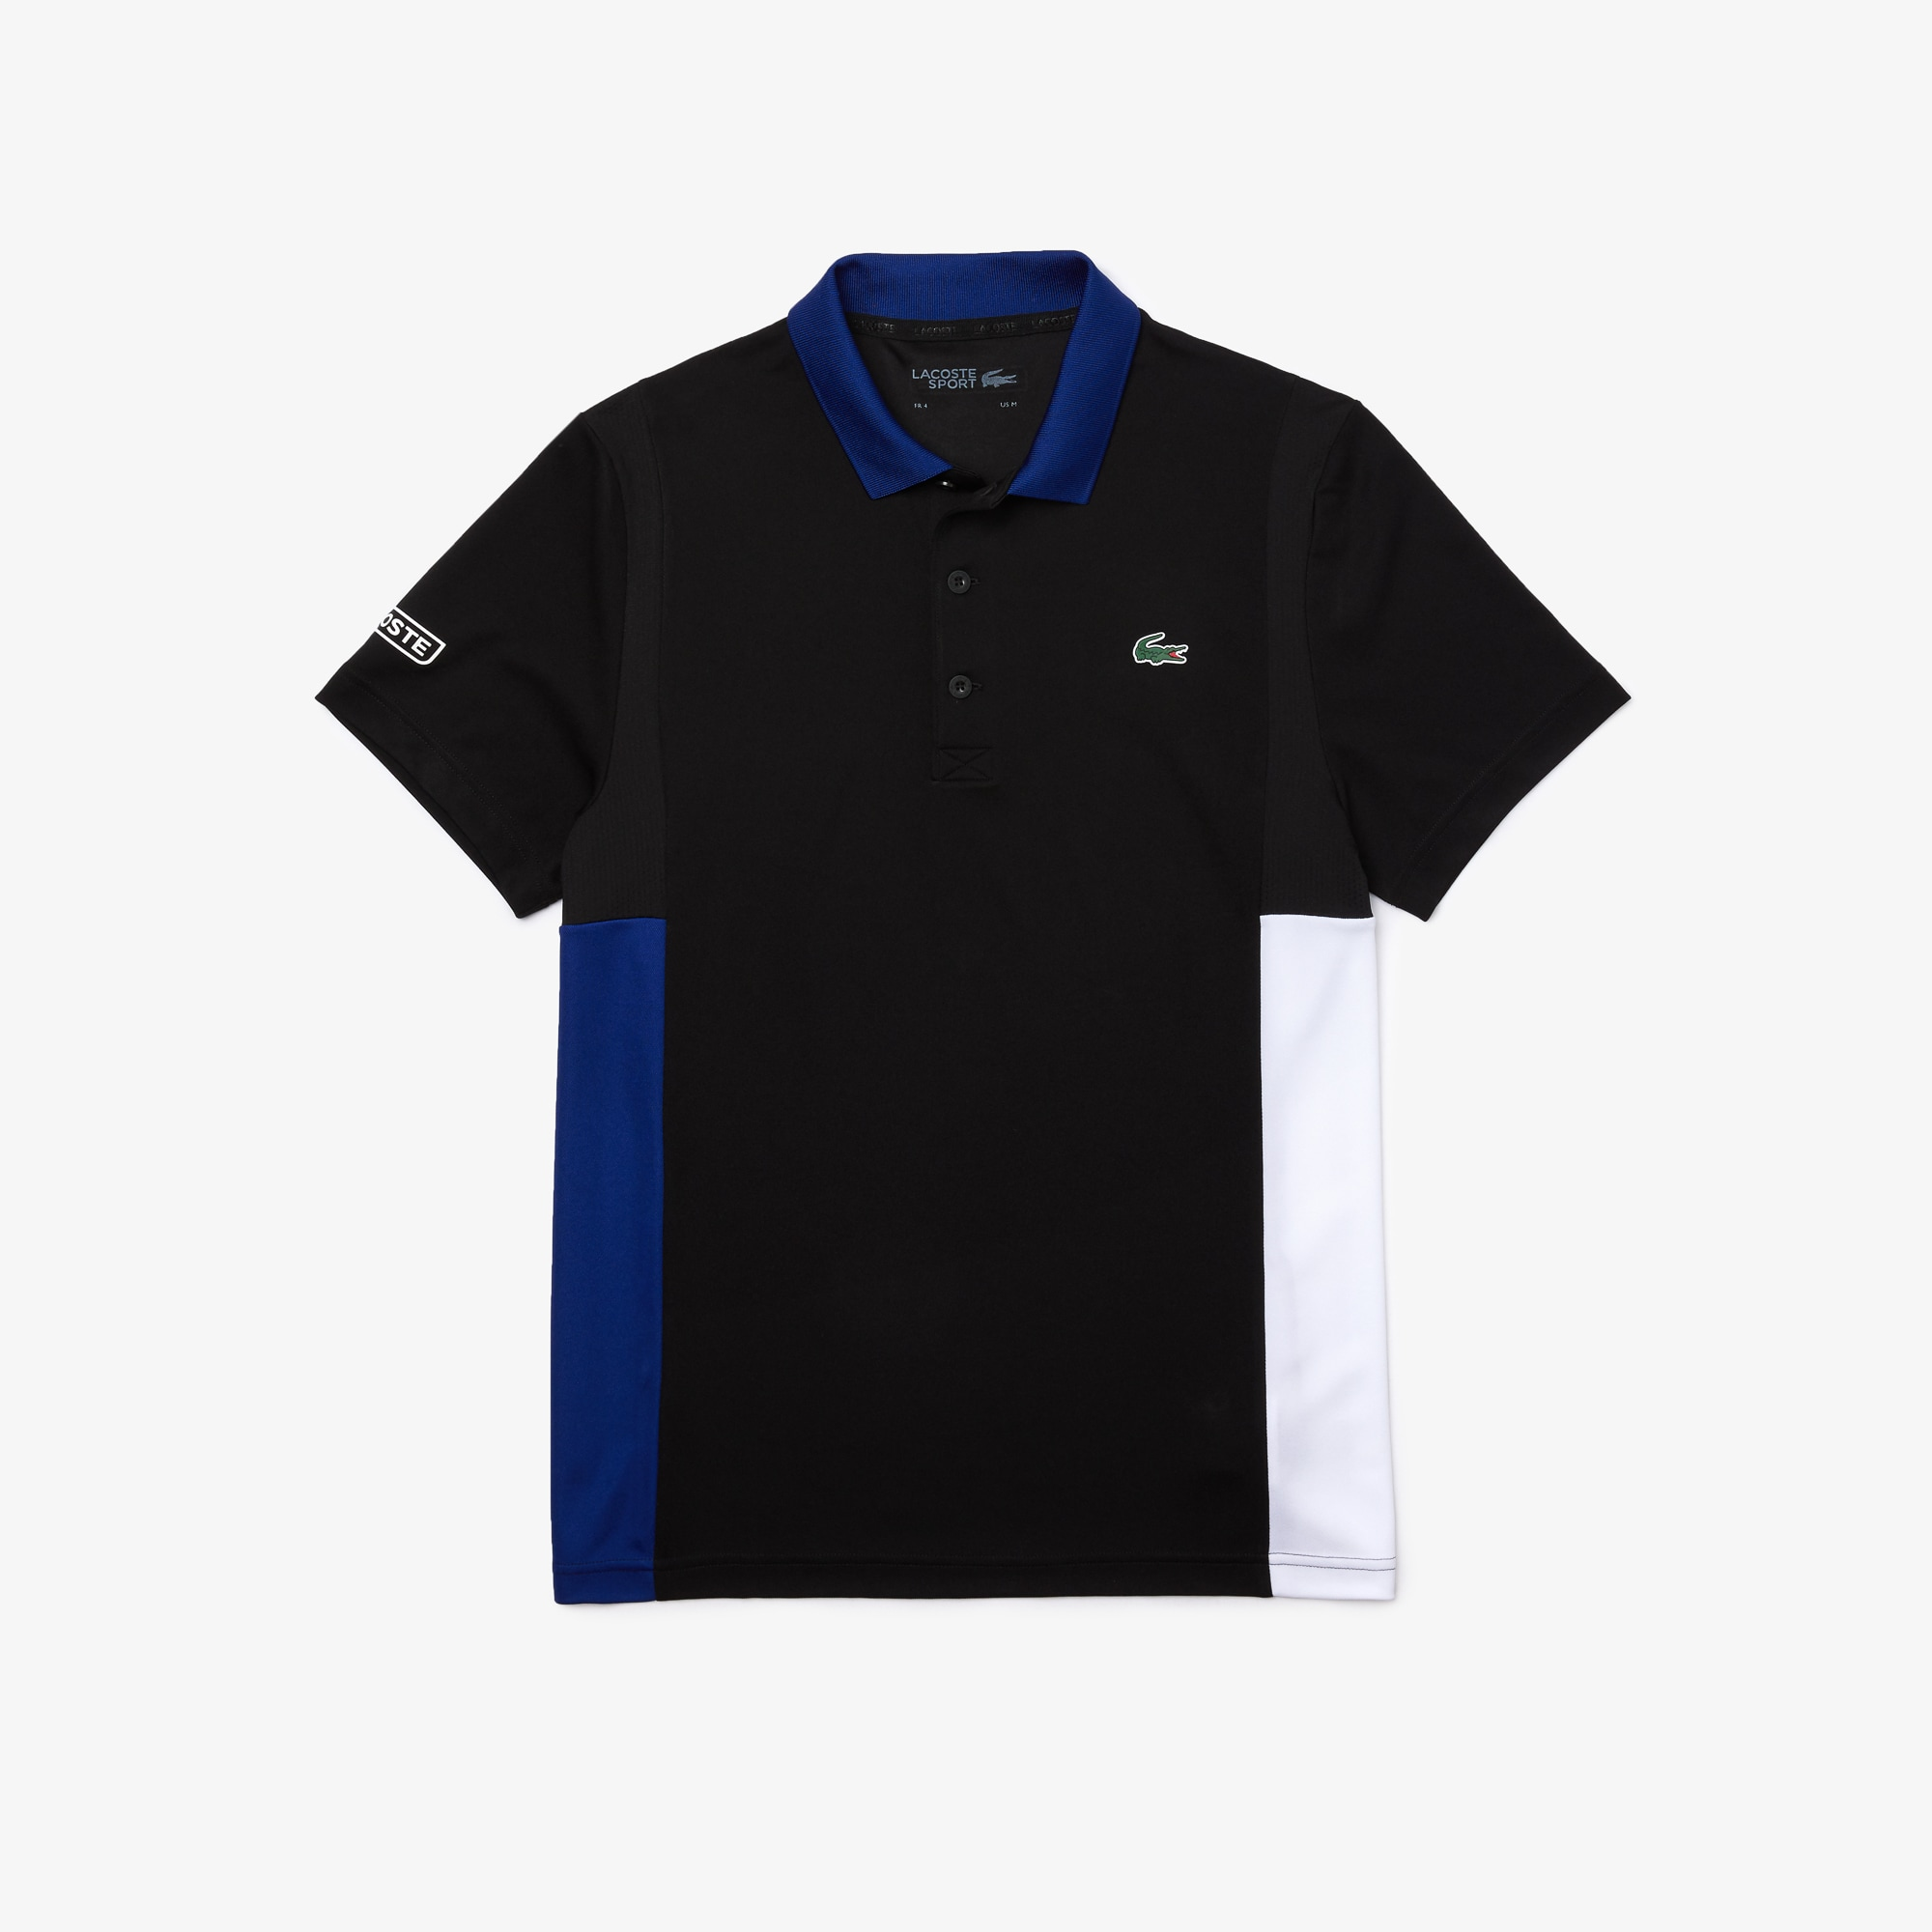 Mens 라코스테 Lacoste SPORT Colourblock Mesh Breathable Pique Tennis Polo Shirt